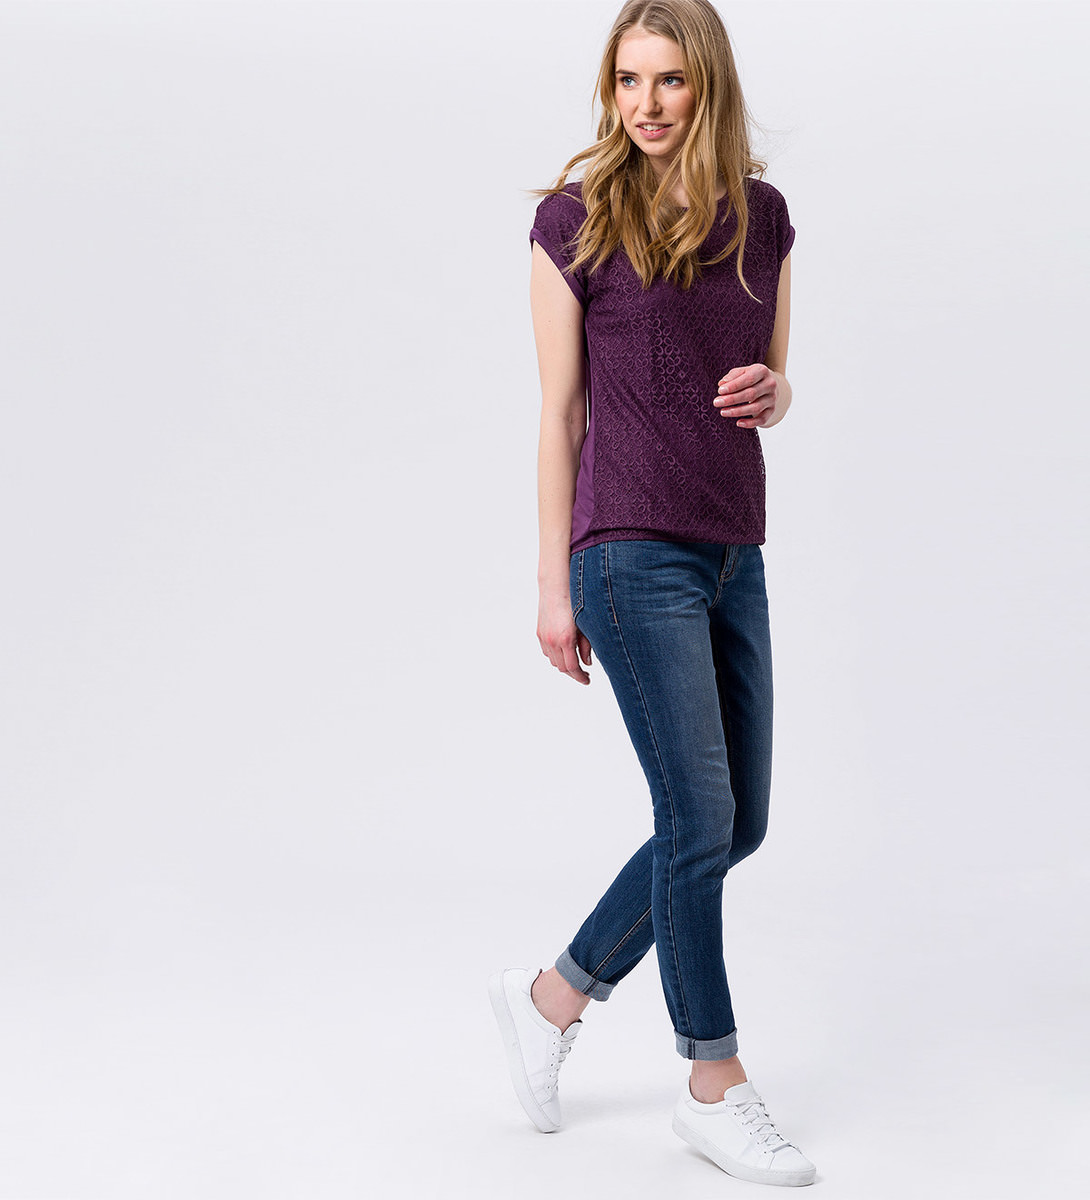 Shirt mit Spitzendesign in plum